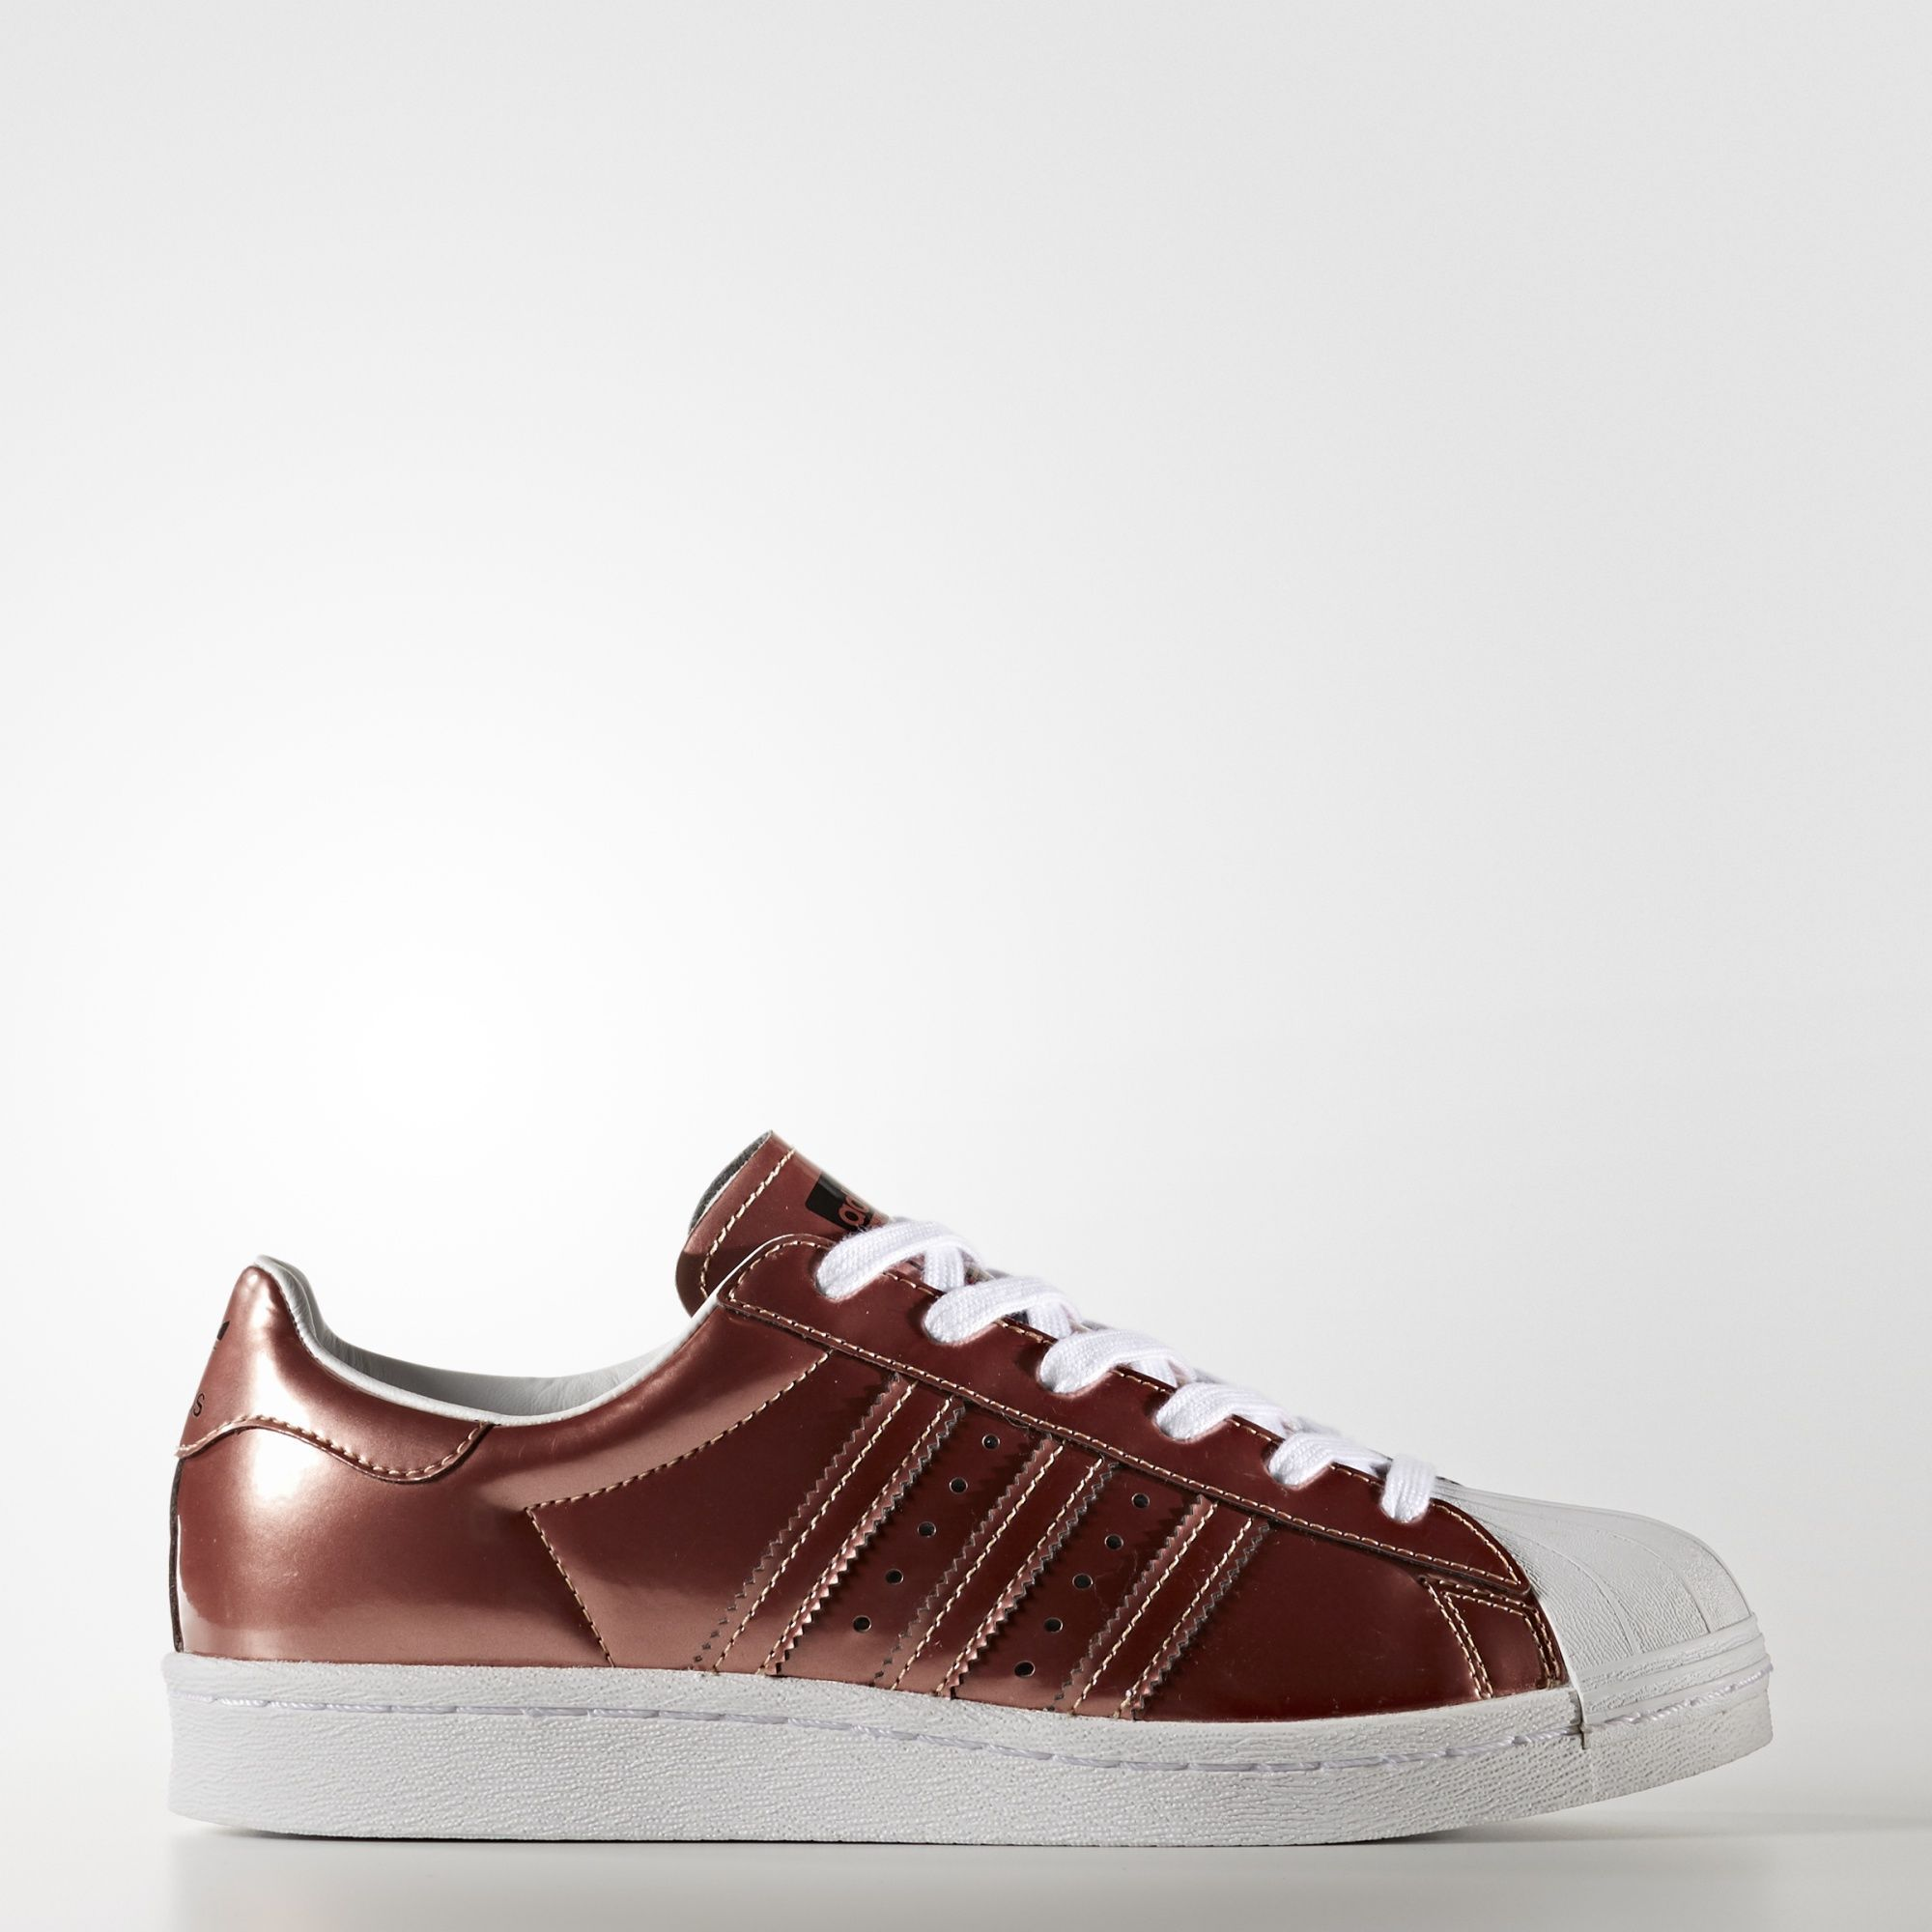 adidas Superstar Boost Shoes - Womens Shoes